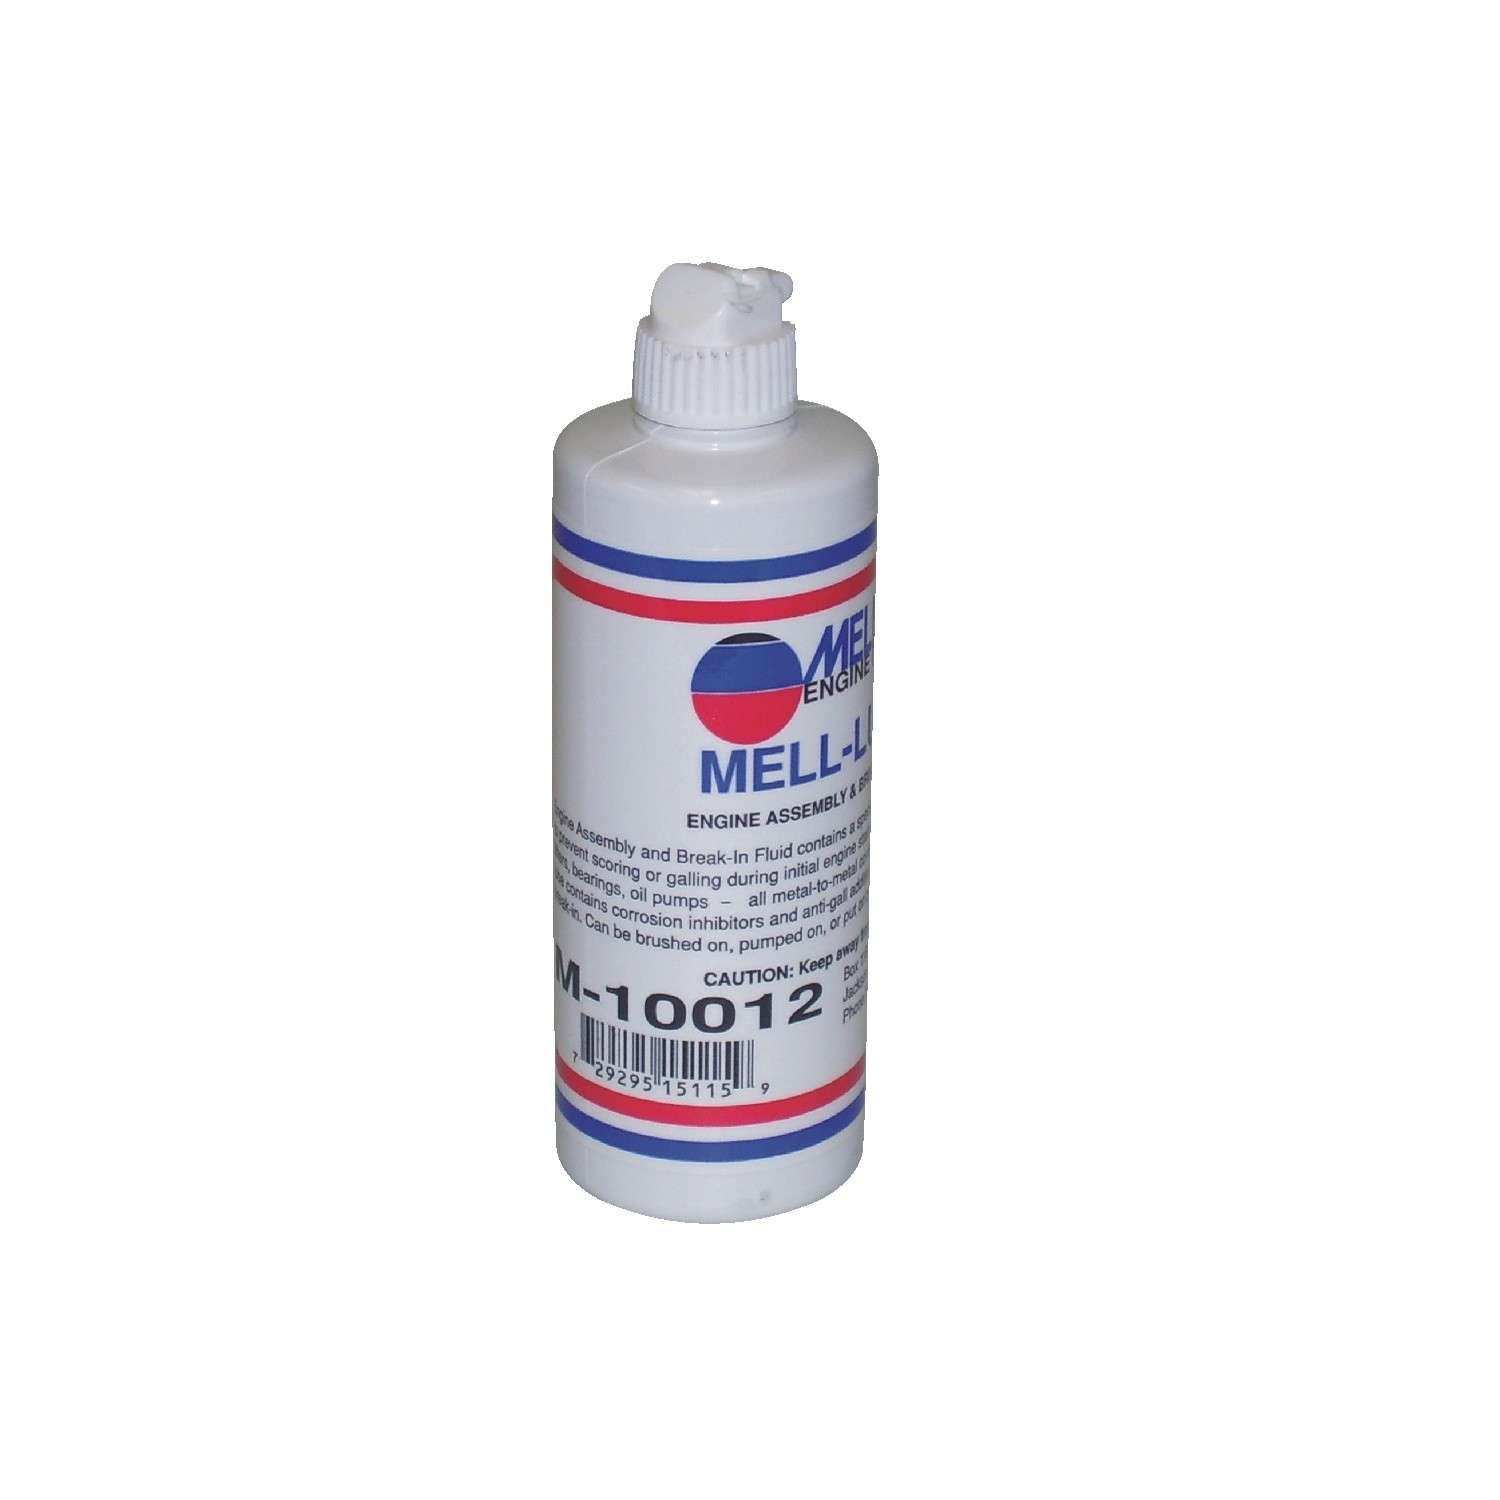 MELLING - Stock Assembly Lube - MEL M-10012